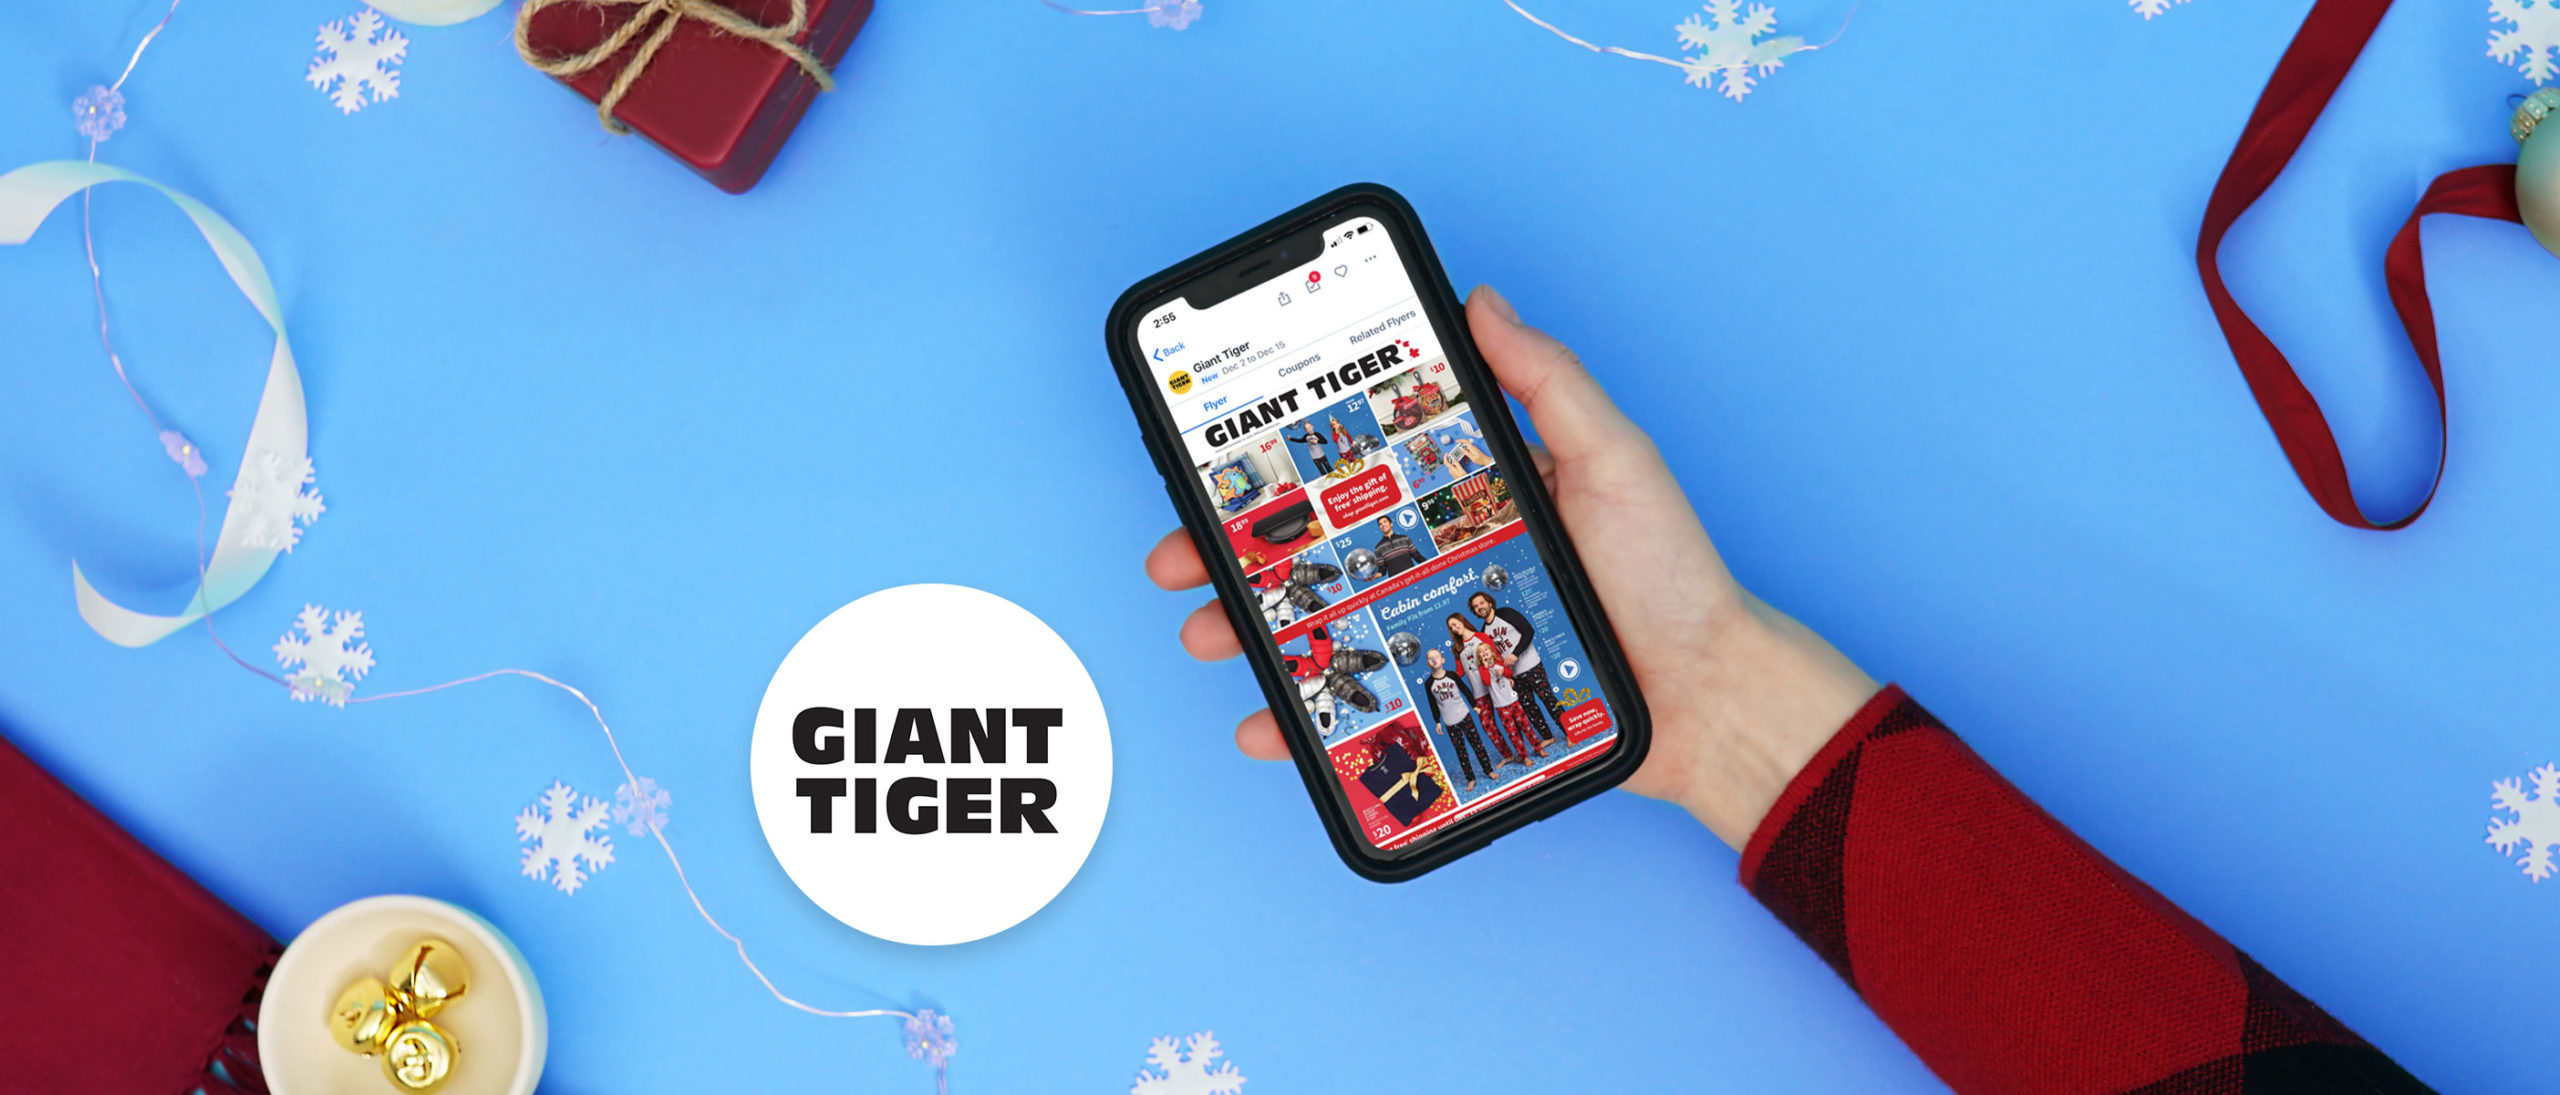 Save Now, Gift Later. Top 4 Reasons to Holiday Shop at Giant Tiger